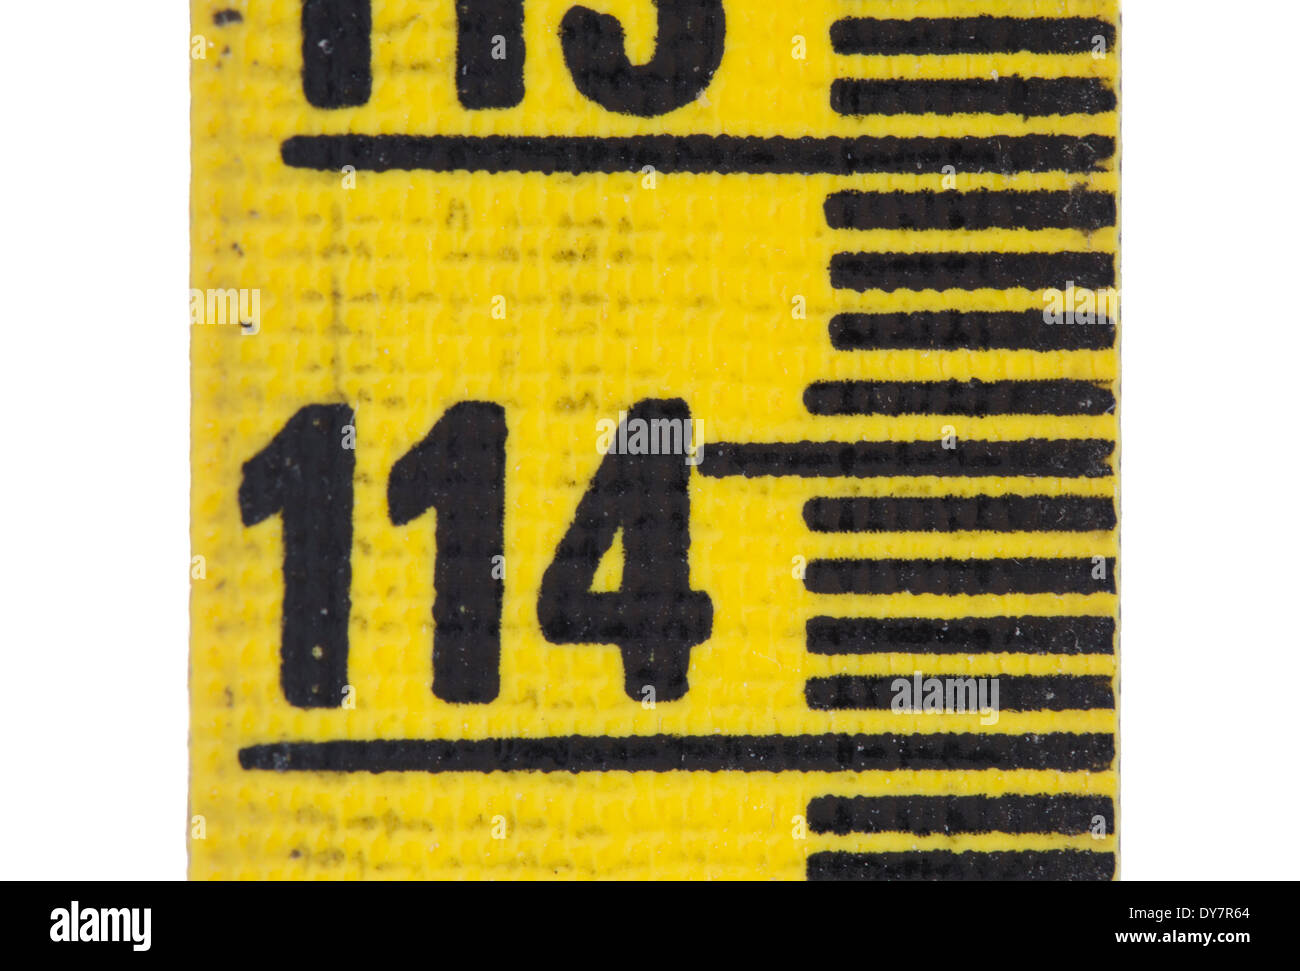 Closeup of a tatty yellow tape measure - Stock Image